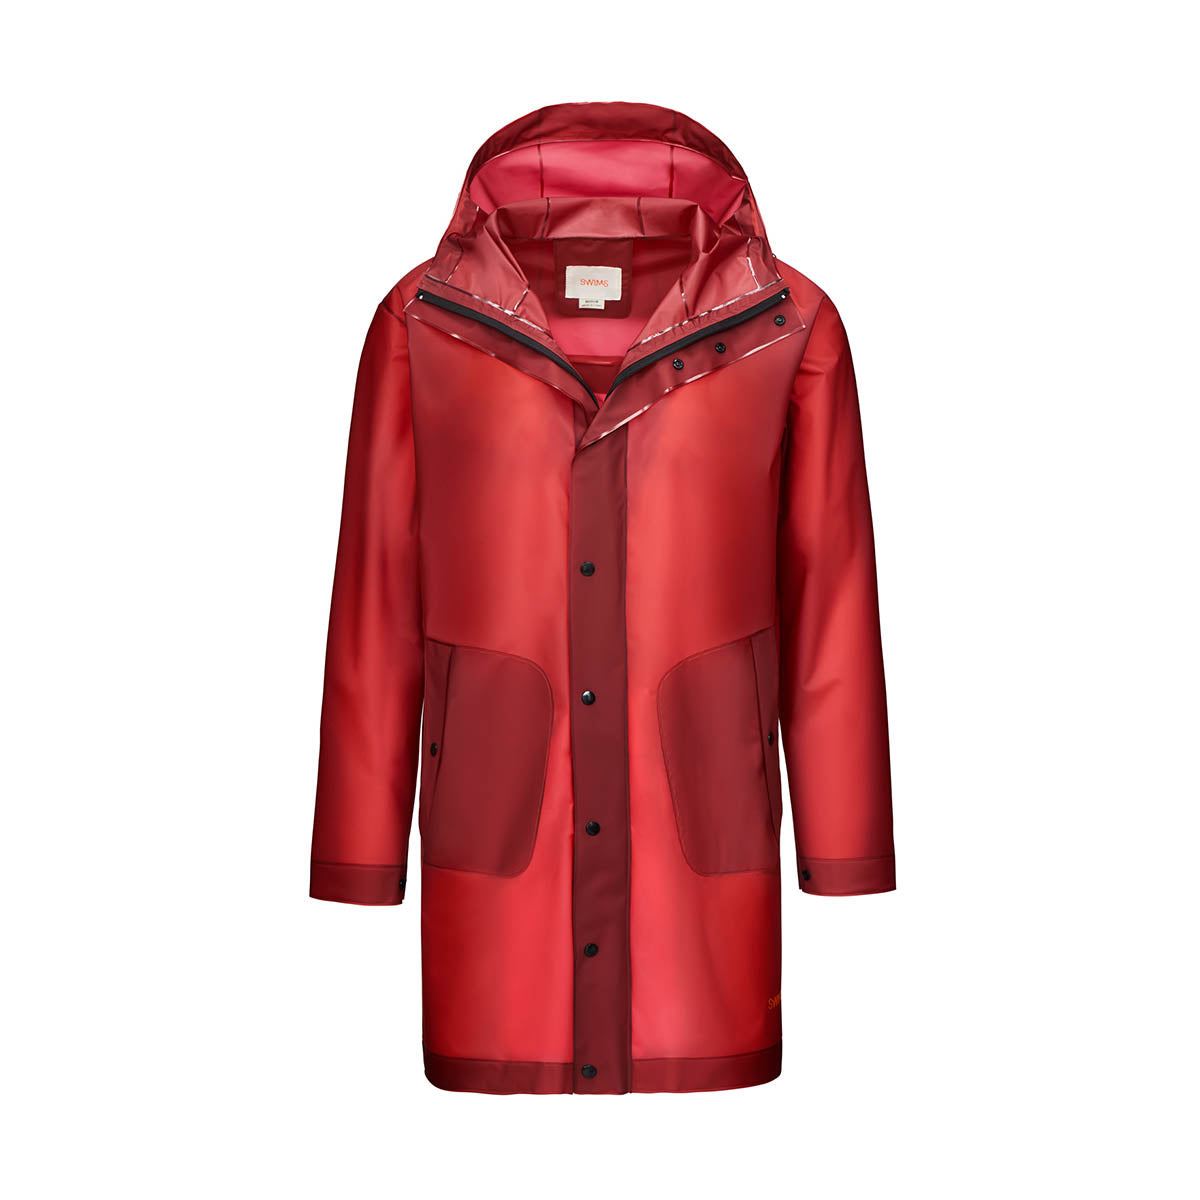 Basel Raincoat - background::white,variant::Red